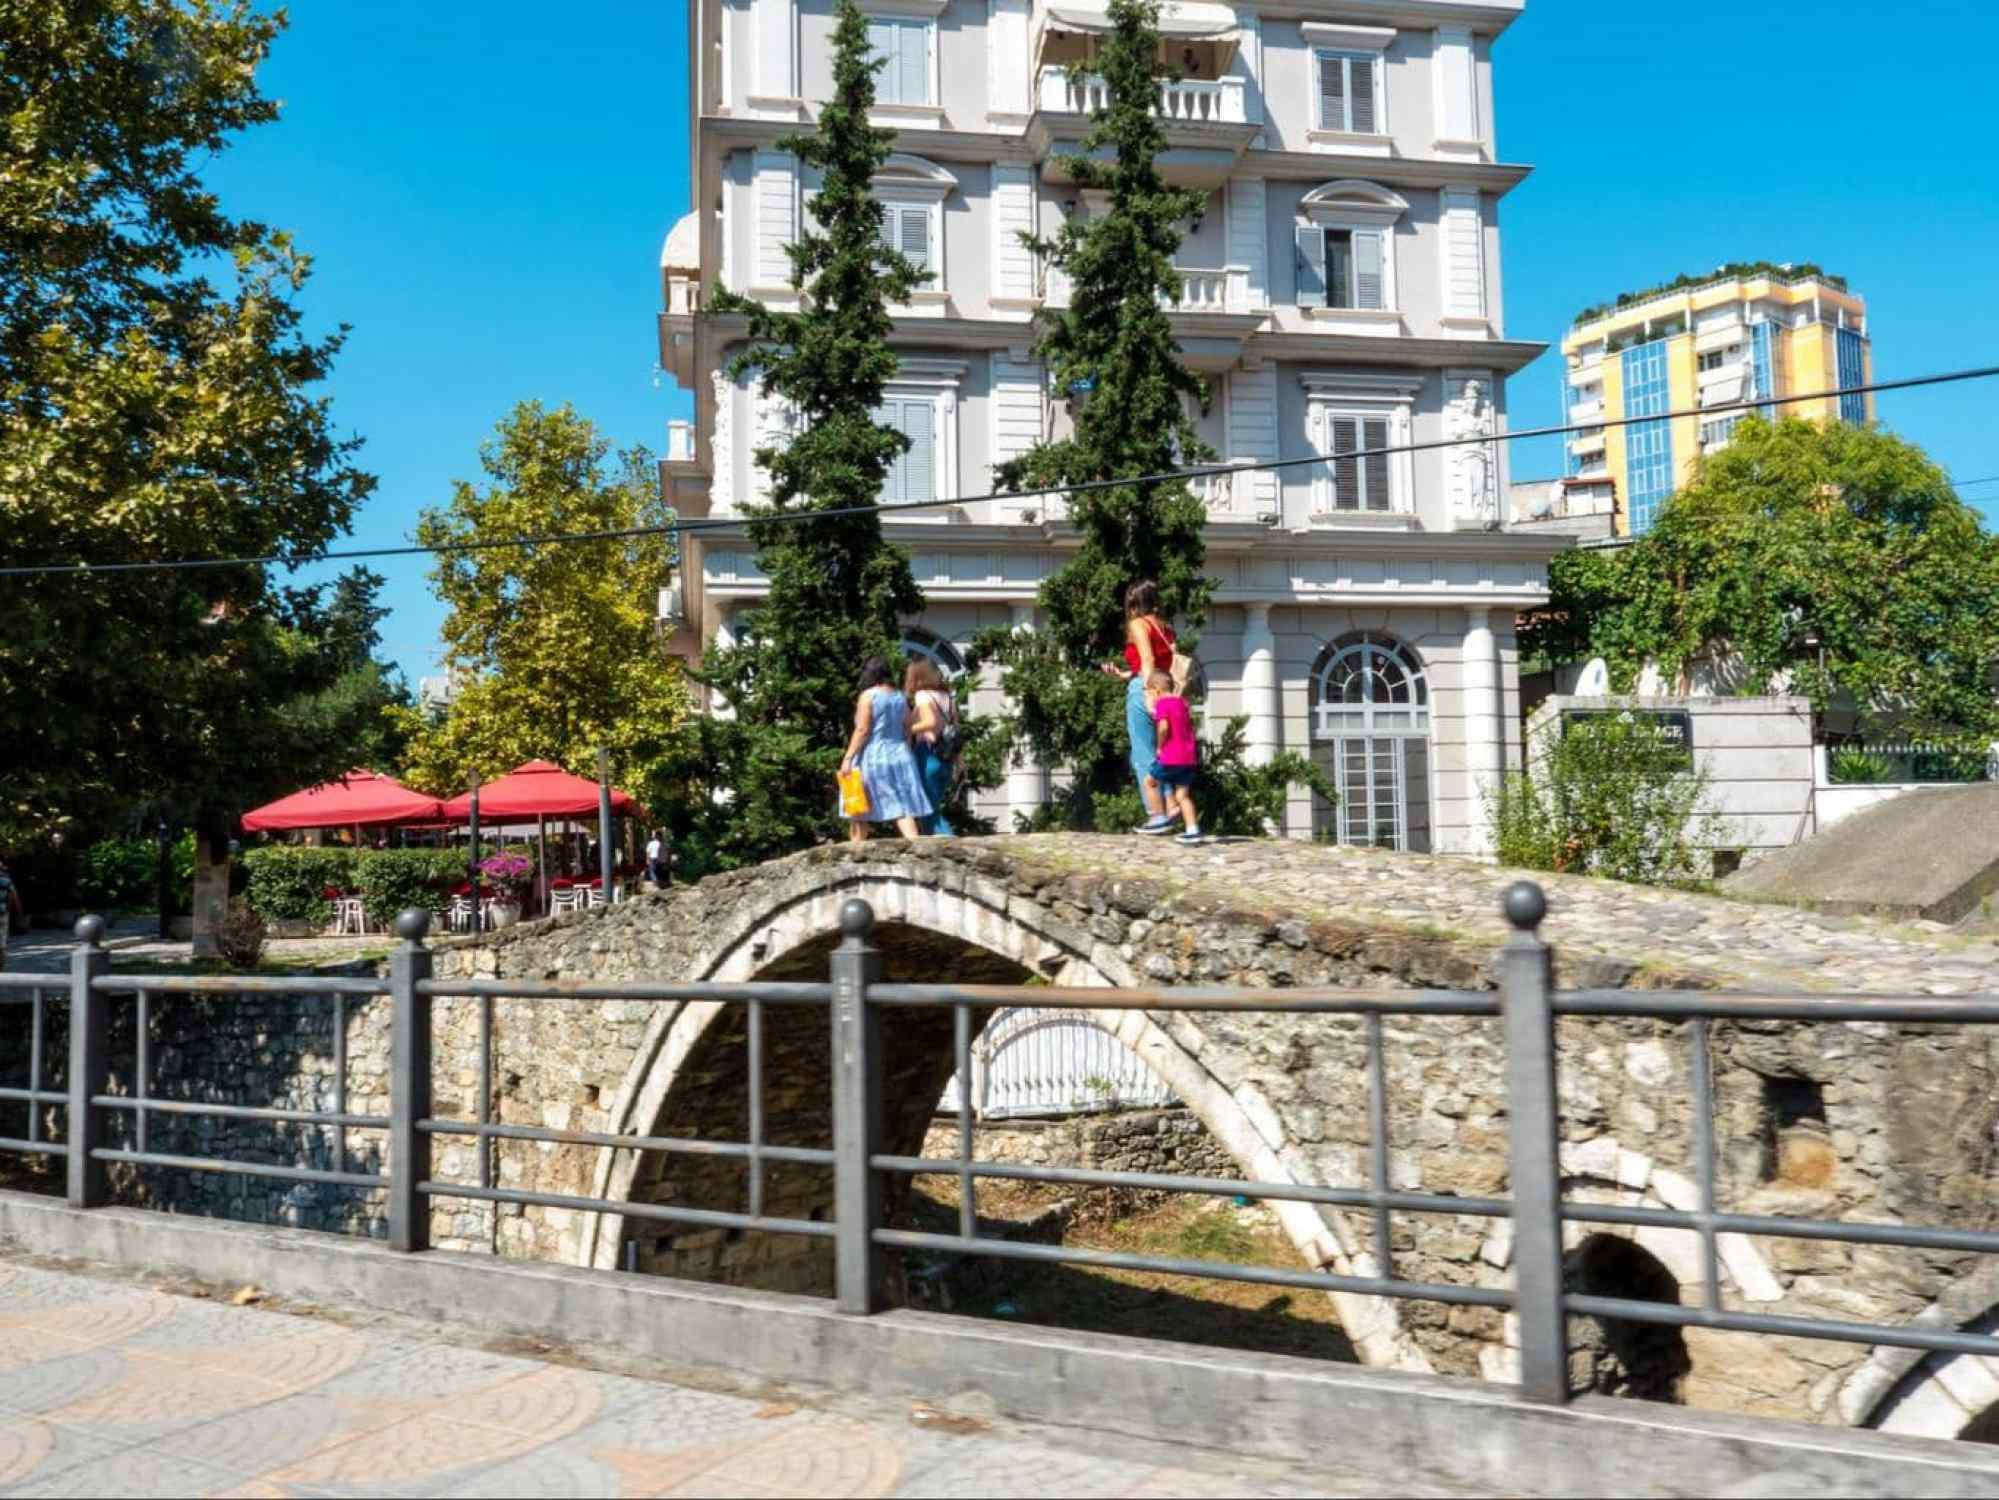 Tanner's bridge in Tirana